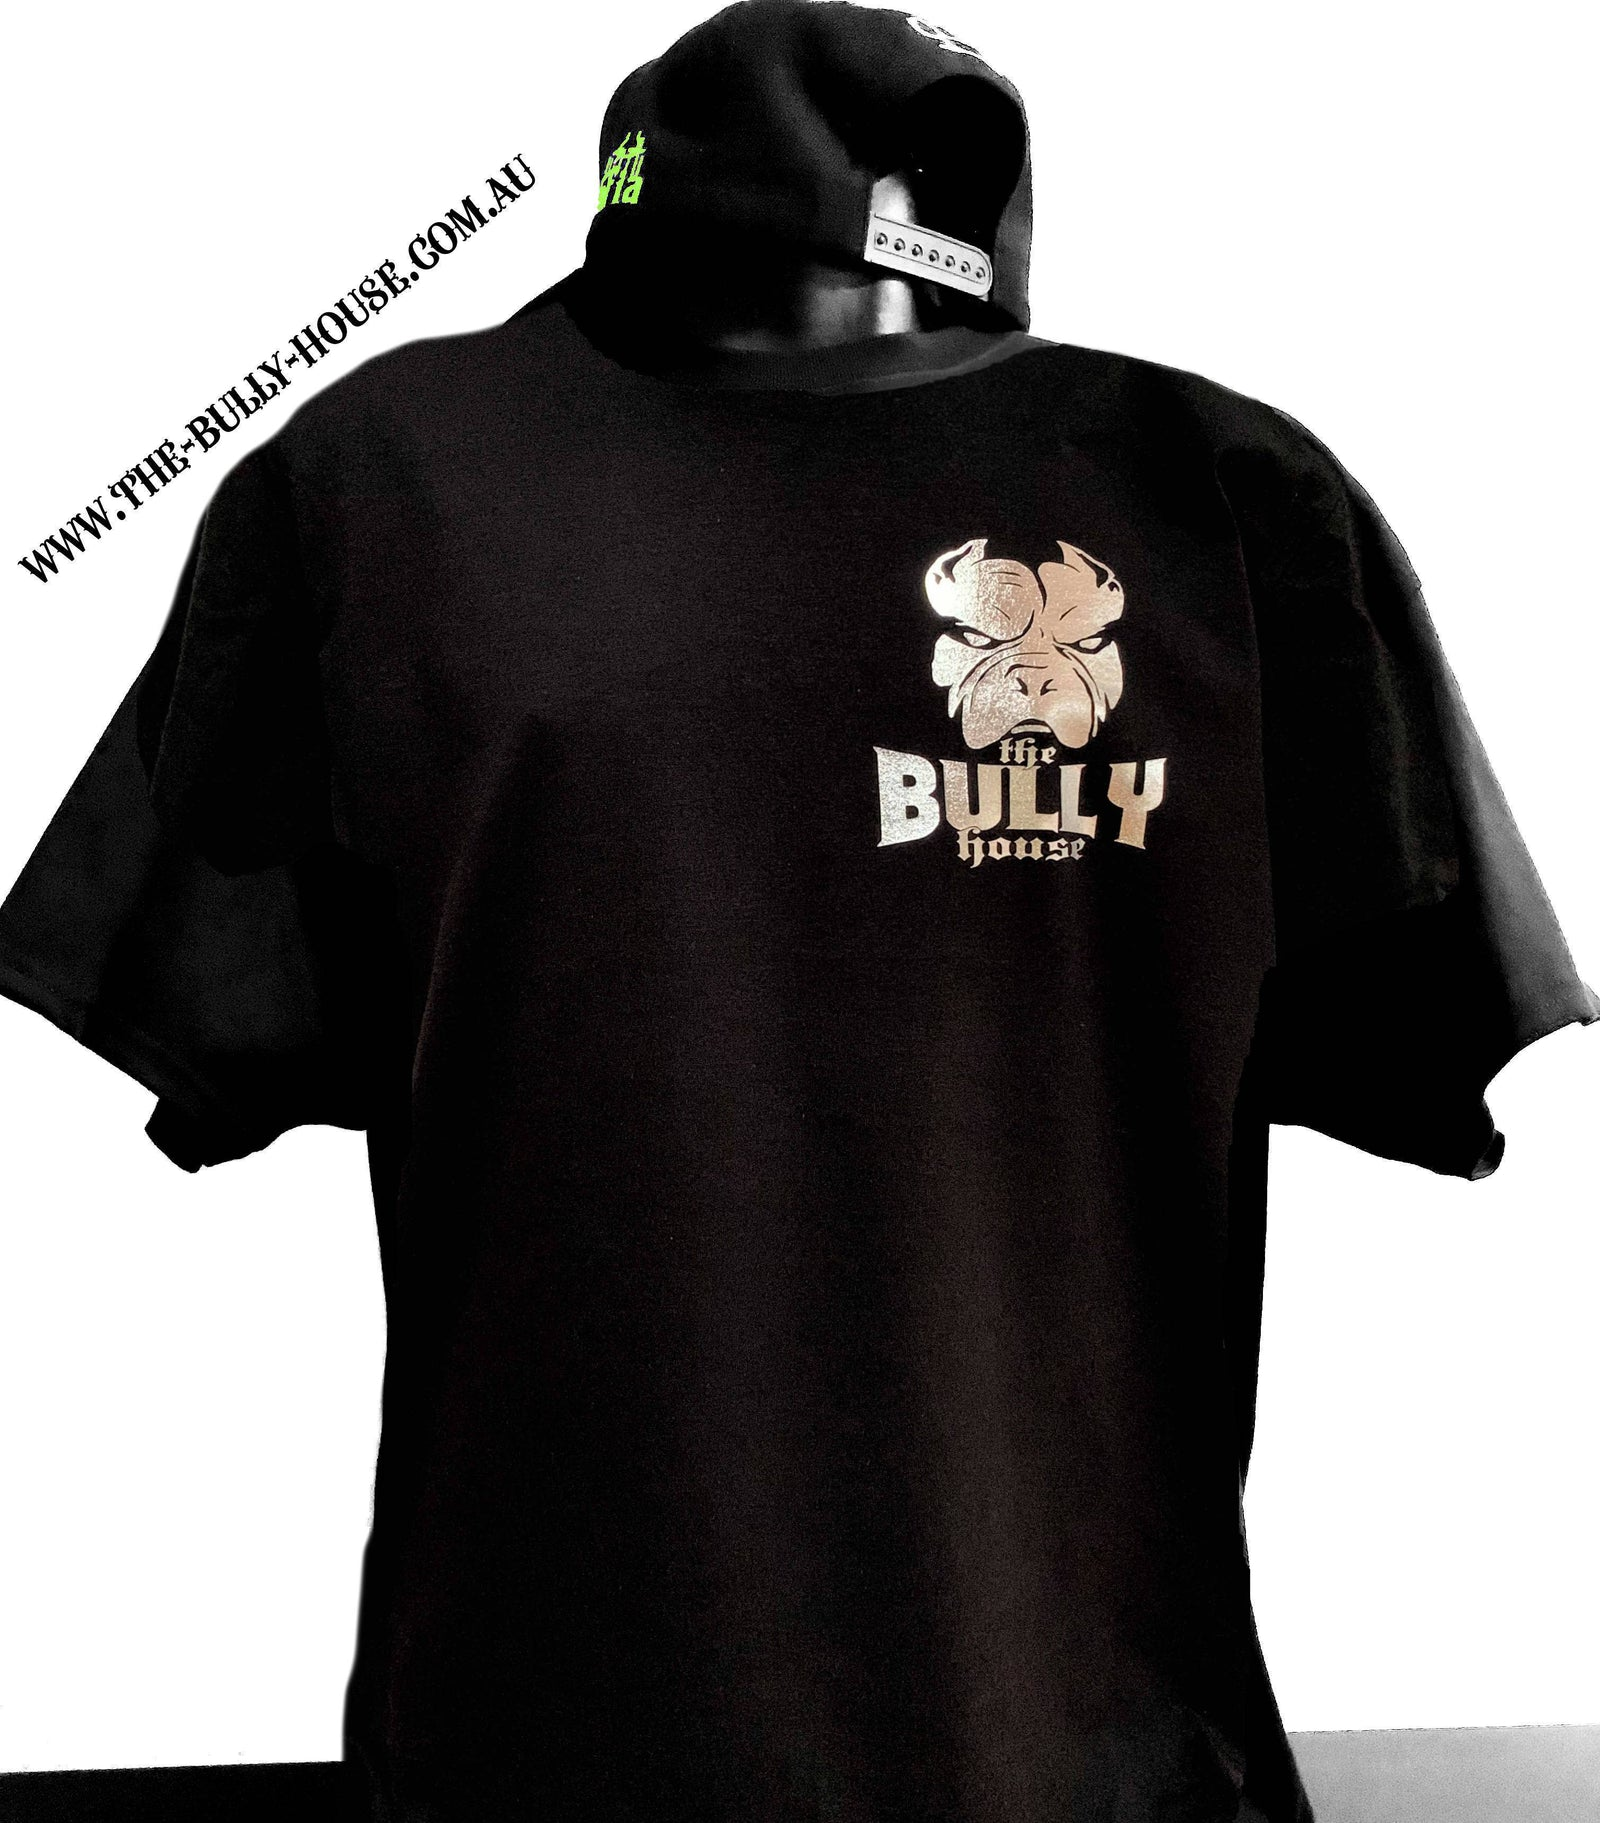 The Bully House -- THE ORIGINALS / SILVER CHROME - HOT FOIL -- T-Shirt - MENS